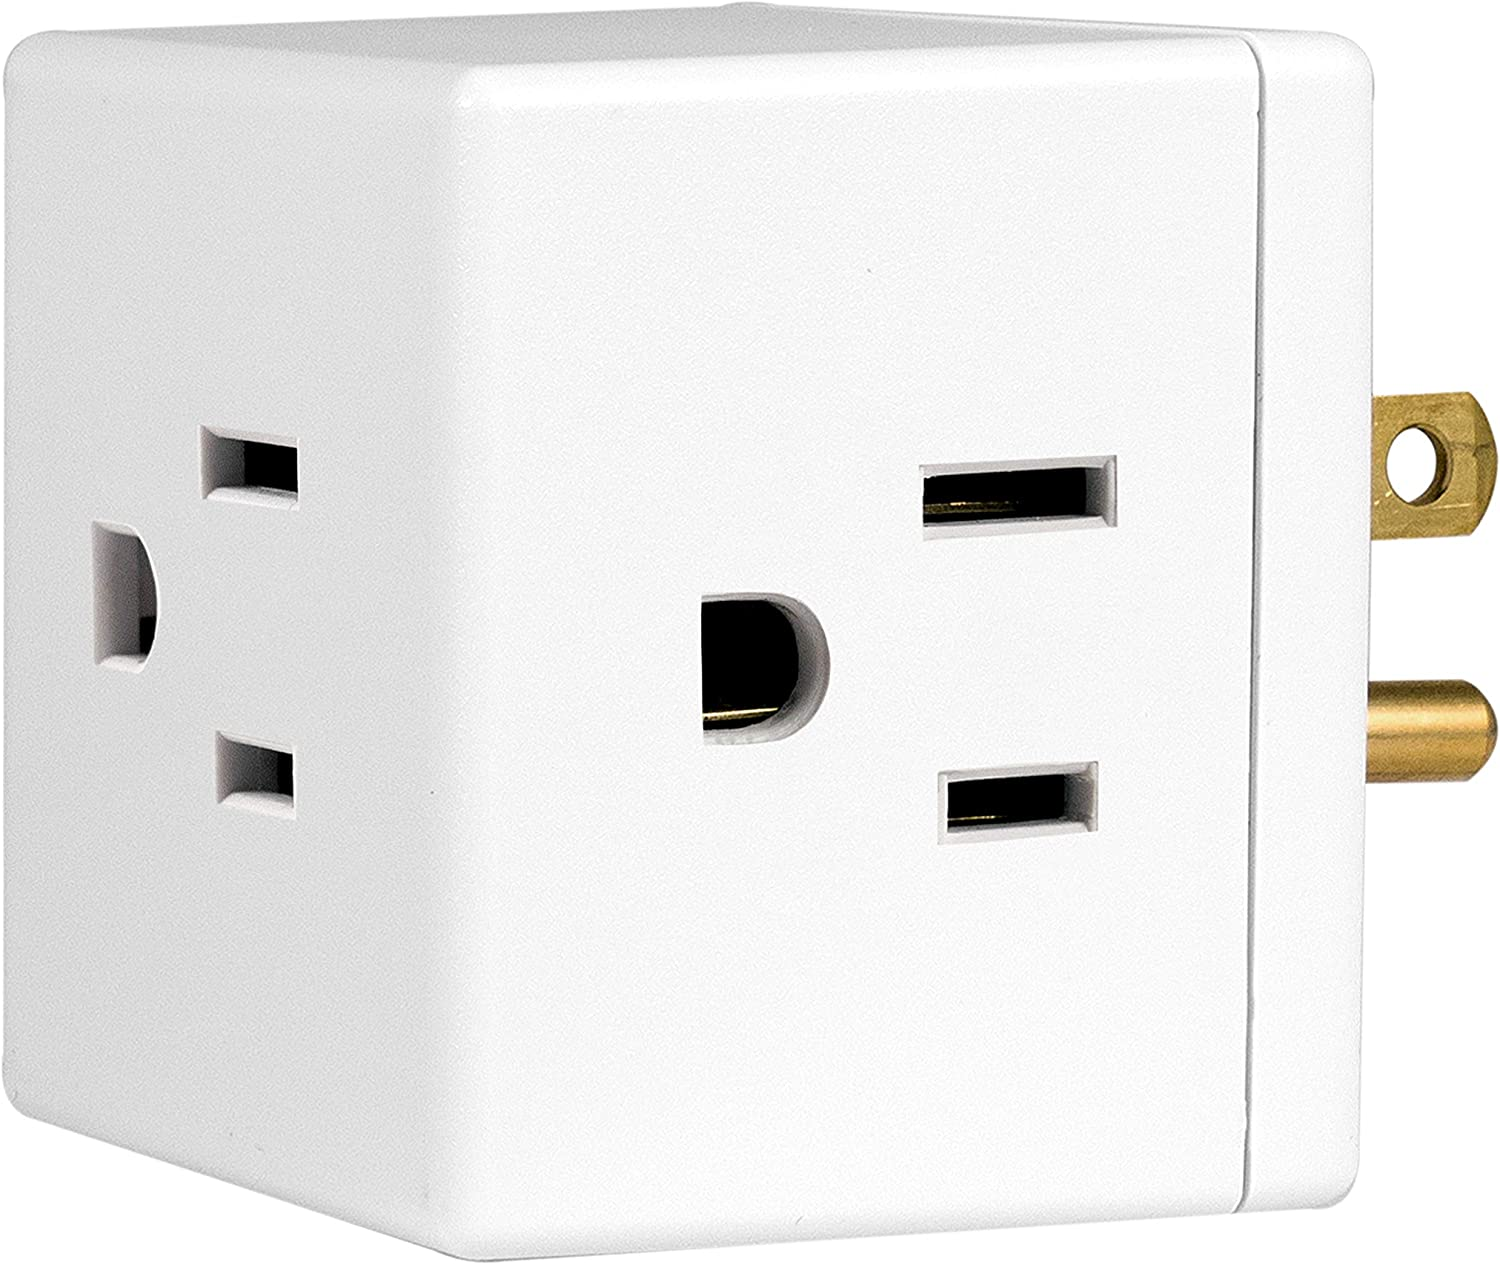 GE Wall Tap, 1, Extra-Wide Adapter Spaced, Easy Access Design, 3 Prong Outlet, Perfect for Travel, UL Listed, White, 58368 - Electrical Multi Outlets -